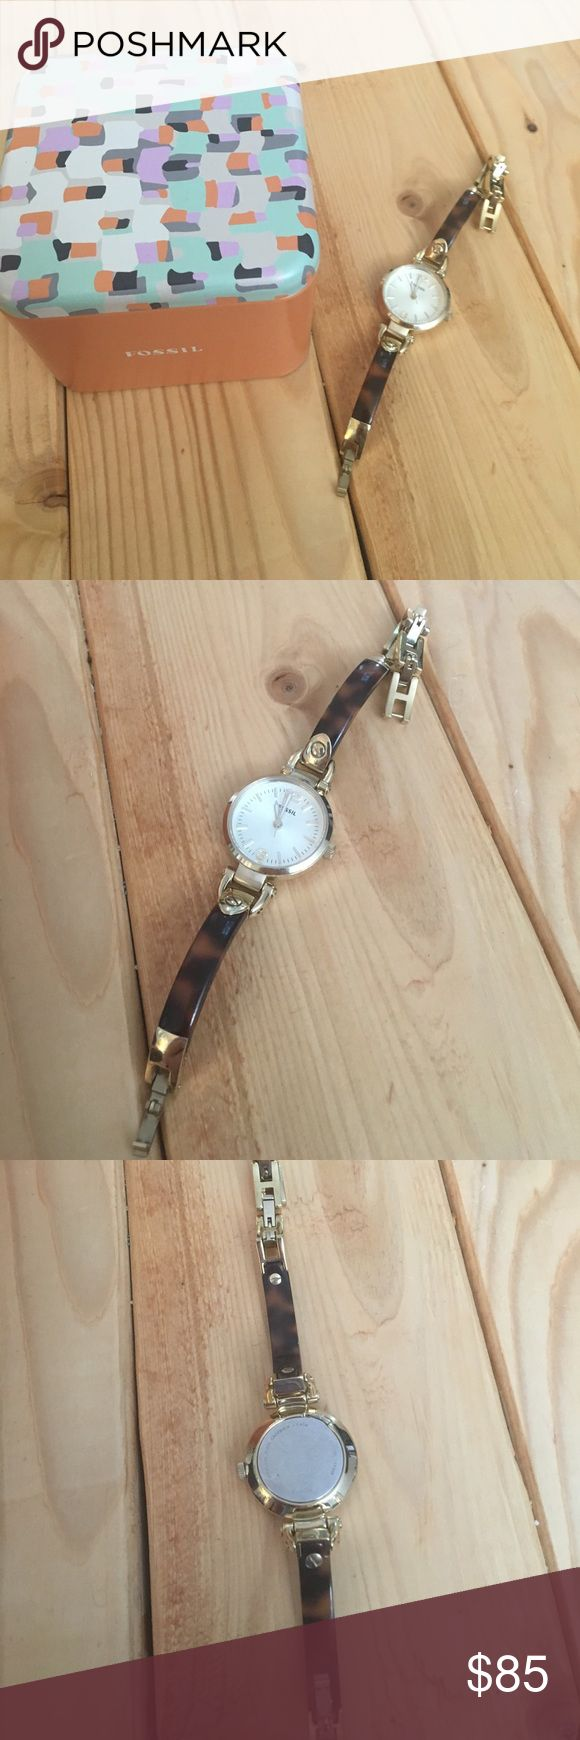 Fossil Gold Watch Gold and tortoise shell watch. Worn a few times. In like new condition with box and adjustable links attached. It still runs great. Fossil Accessories Watches